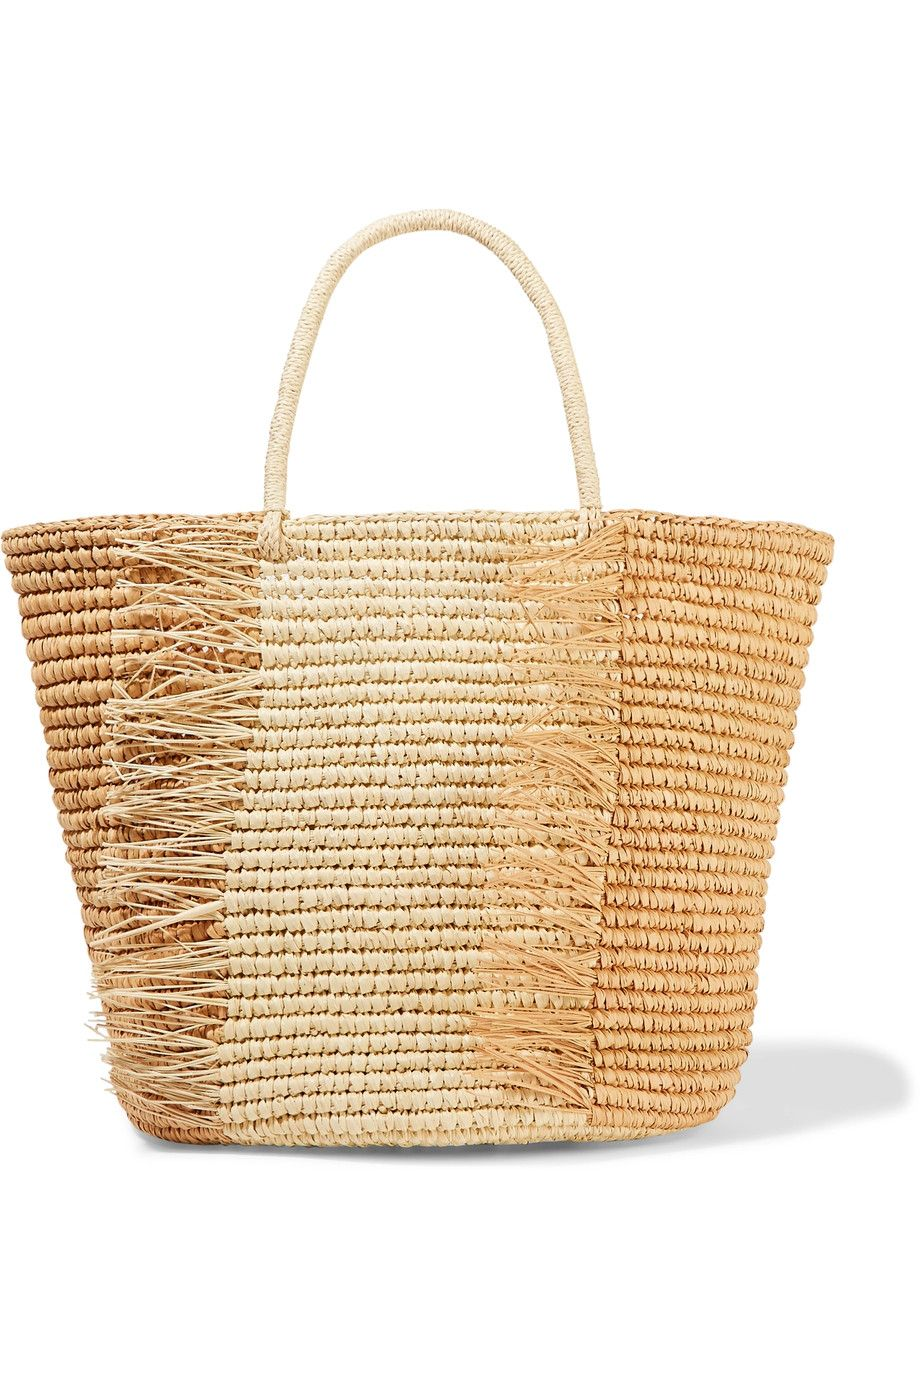 bff1a20fcb7c64 Shop on-sale Sensi Studio Frayed two-tone woven toquilla straw tote ...